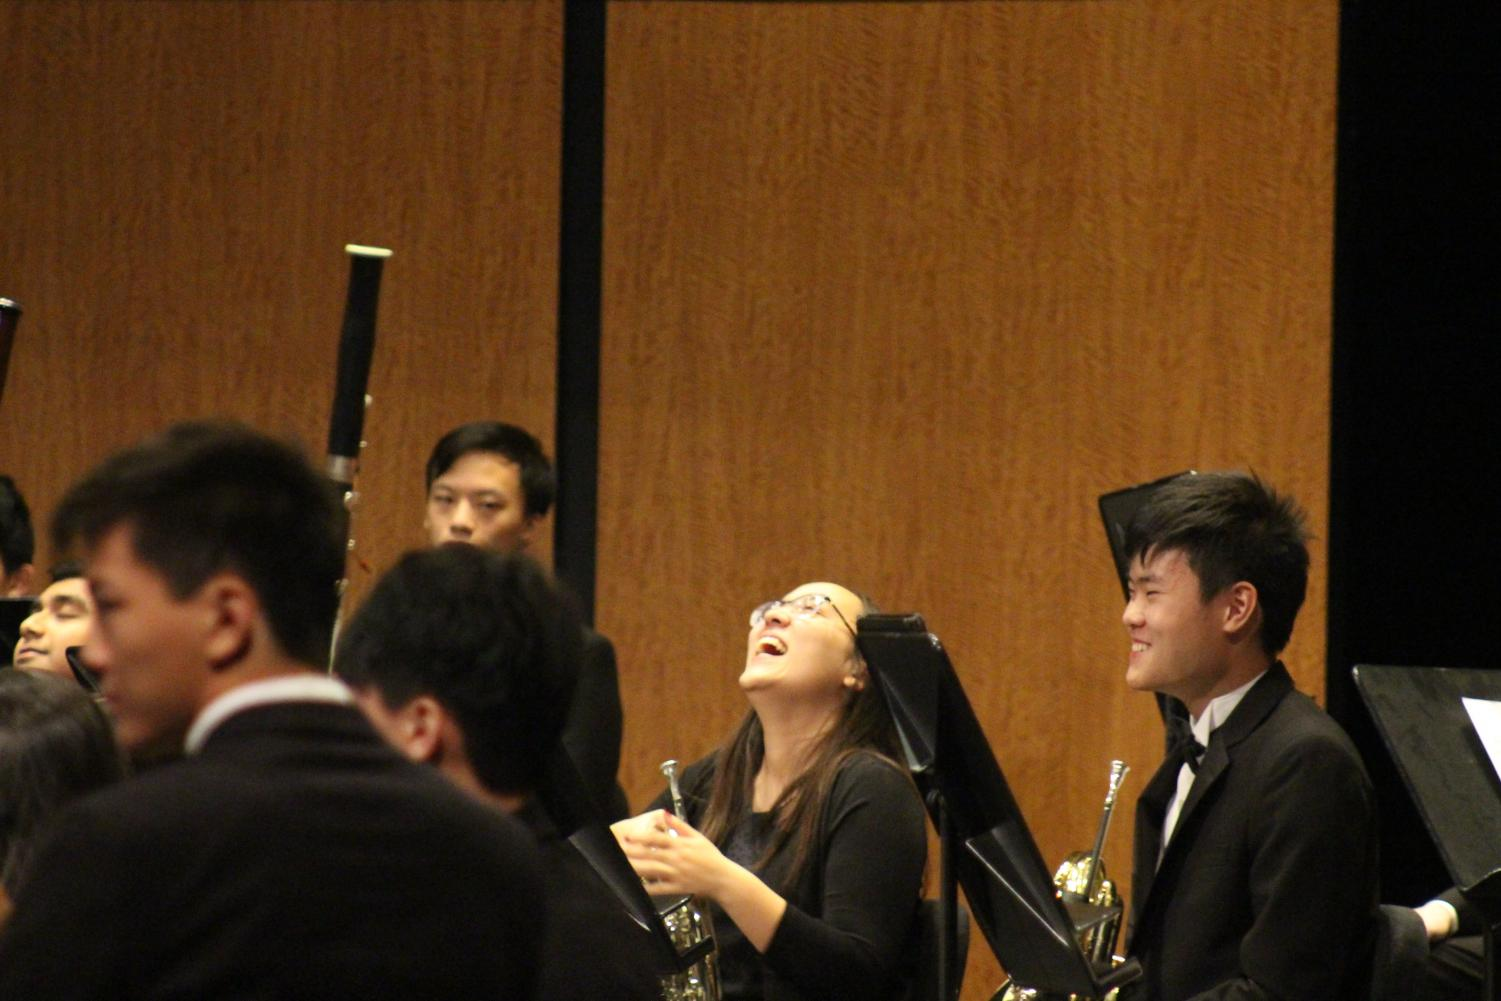 Miriam SIlberman '19 laughs during a break in the performance. Silberman is a member of band, but performed with Patriot Orchestra during the concert.